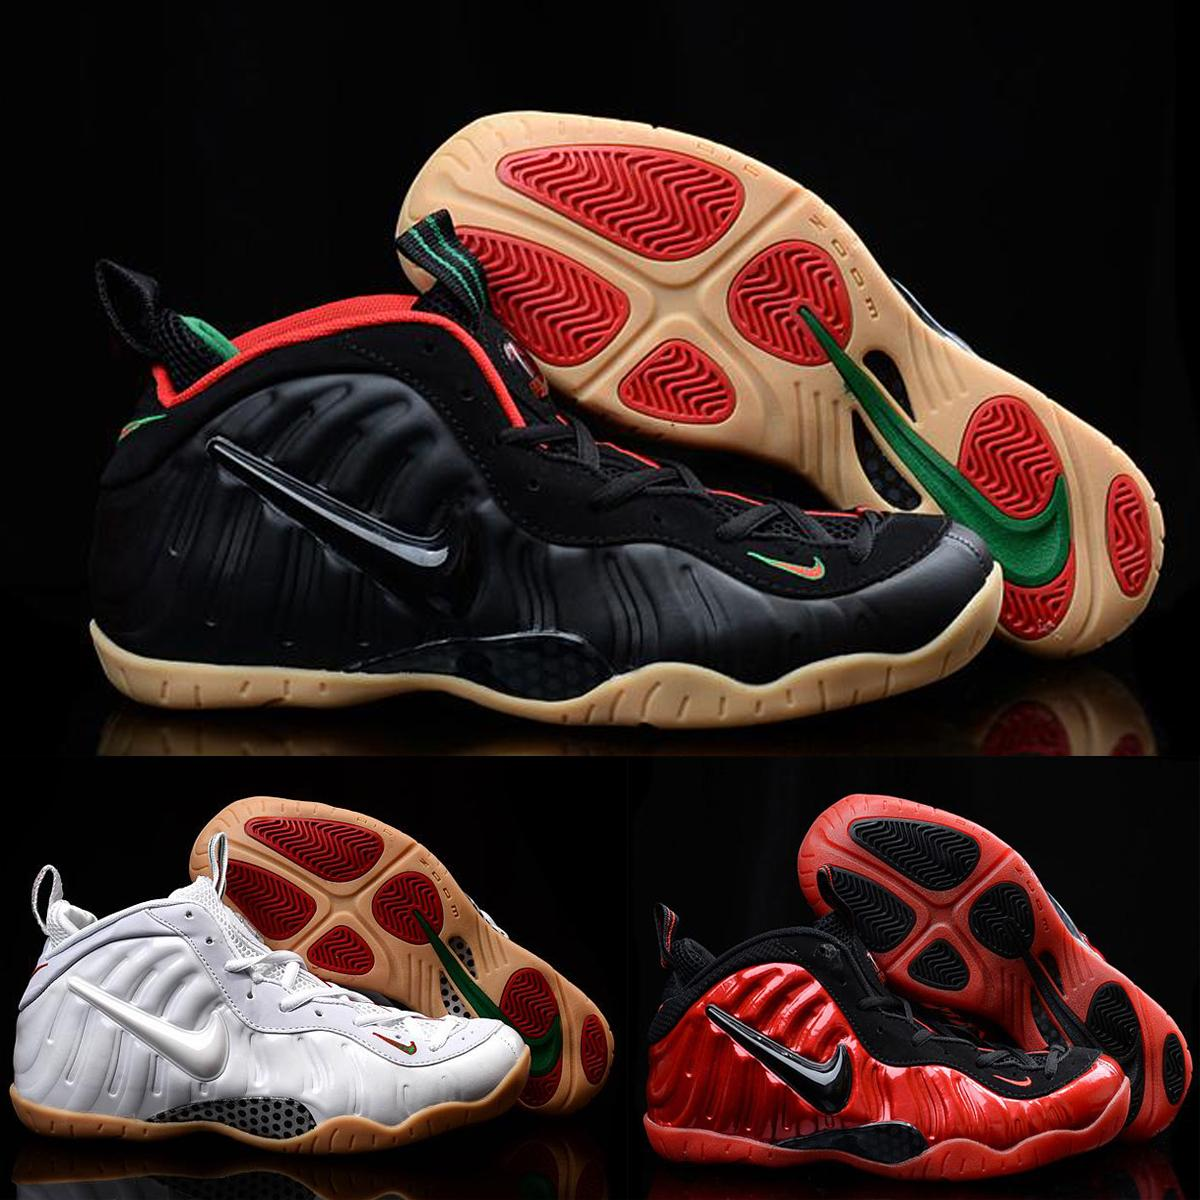 Nike Air Foamposite Pro Black Gym Red Grg Green Metallic Gold ,Original Air  Foamposite One Shoes For Men Basketball Sneakers 4e Basketball Shoes  Loafers For ...